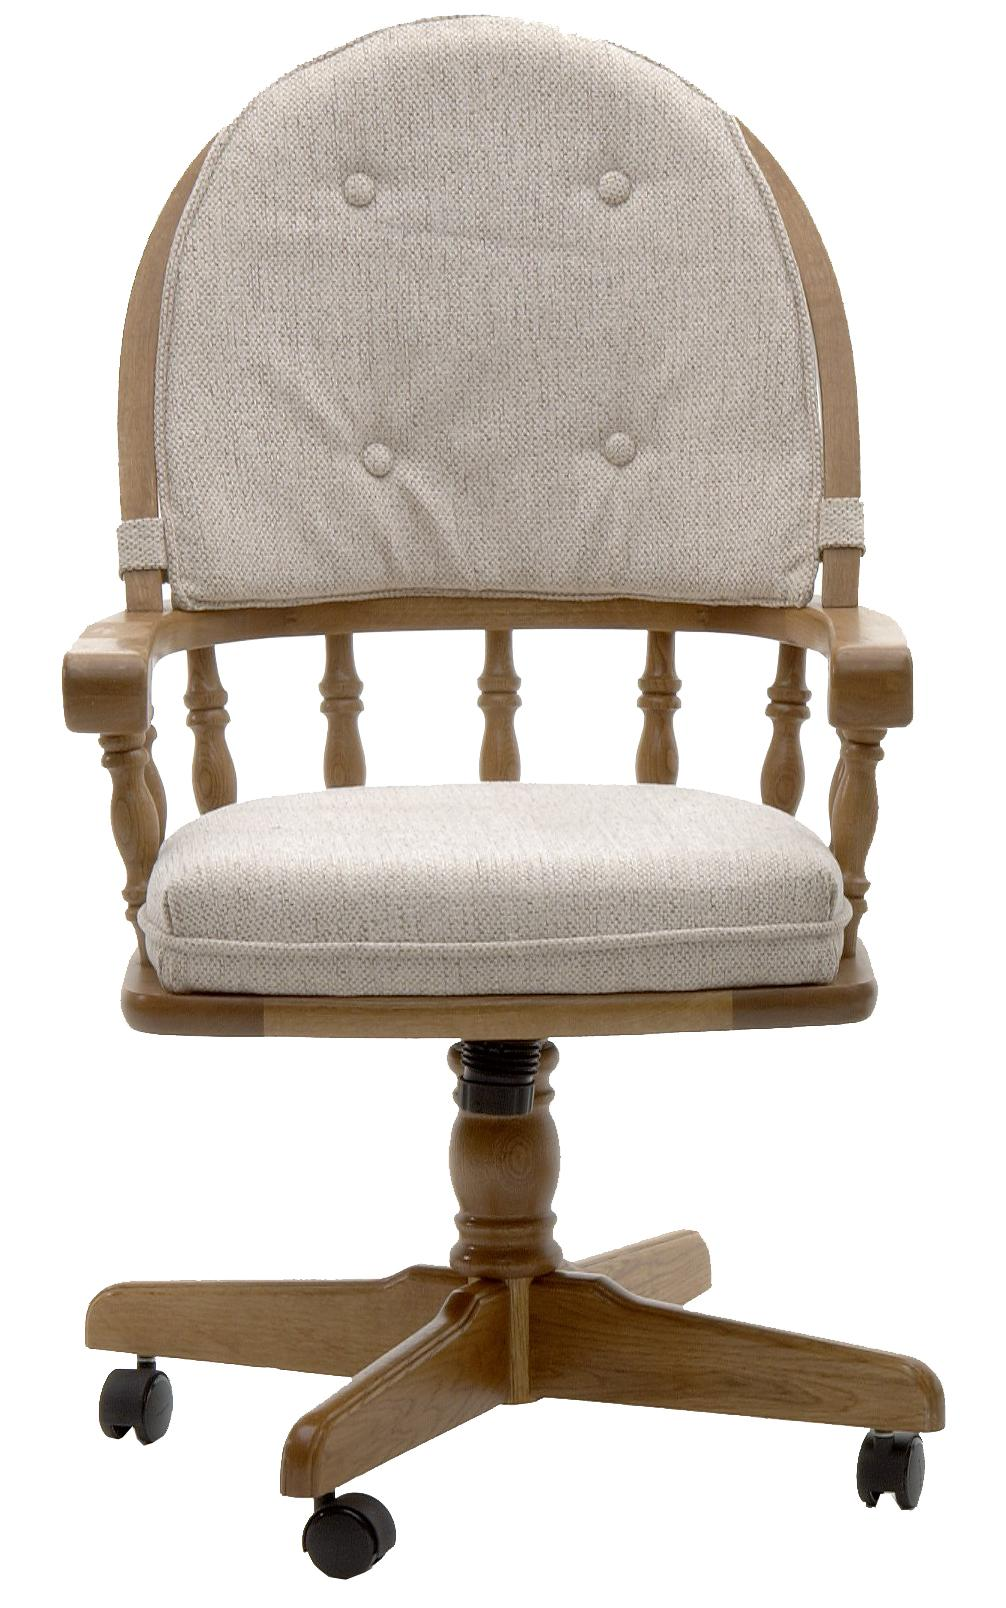 Classic Oak Game Chair with Casters by Intercon at Darvin Furniture